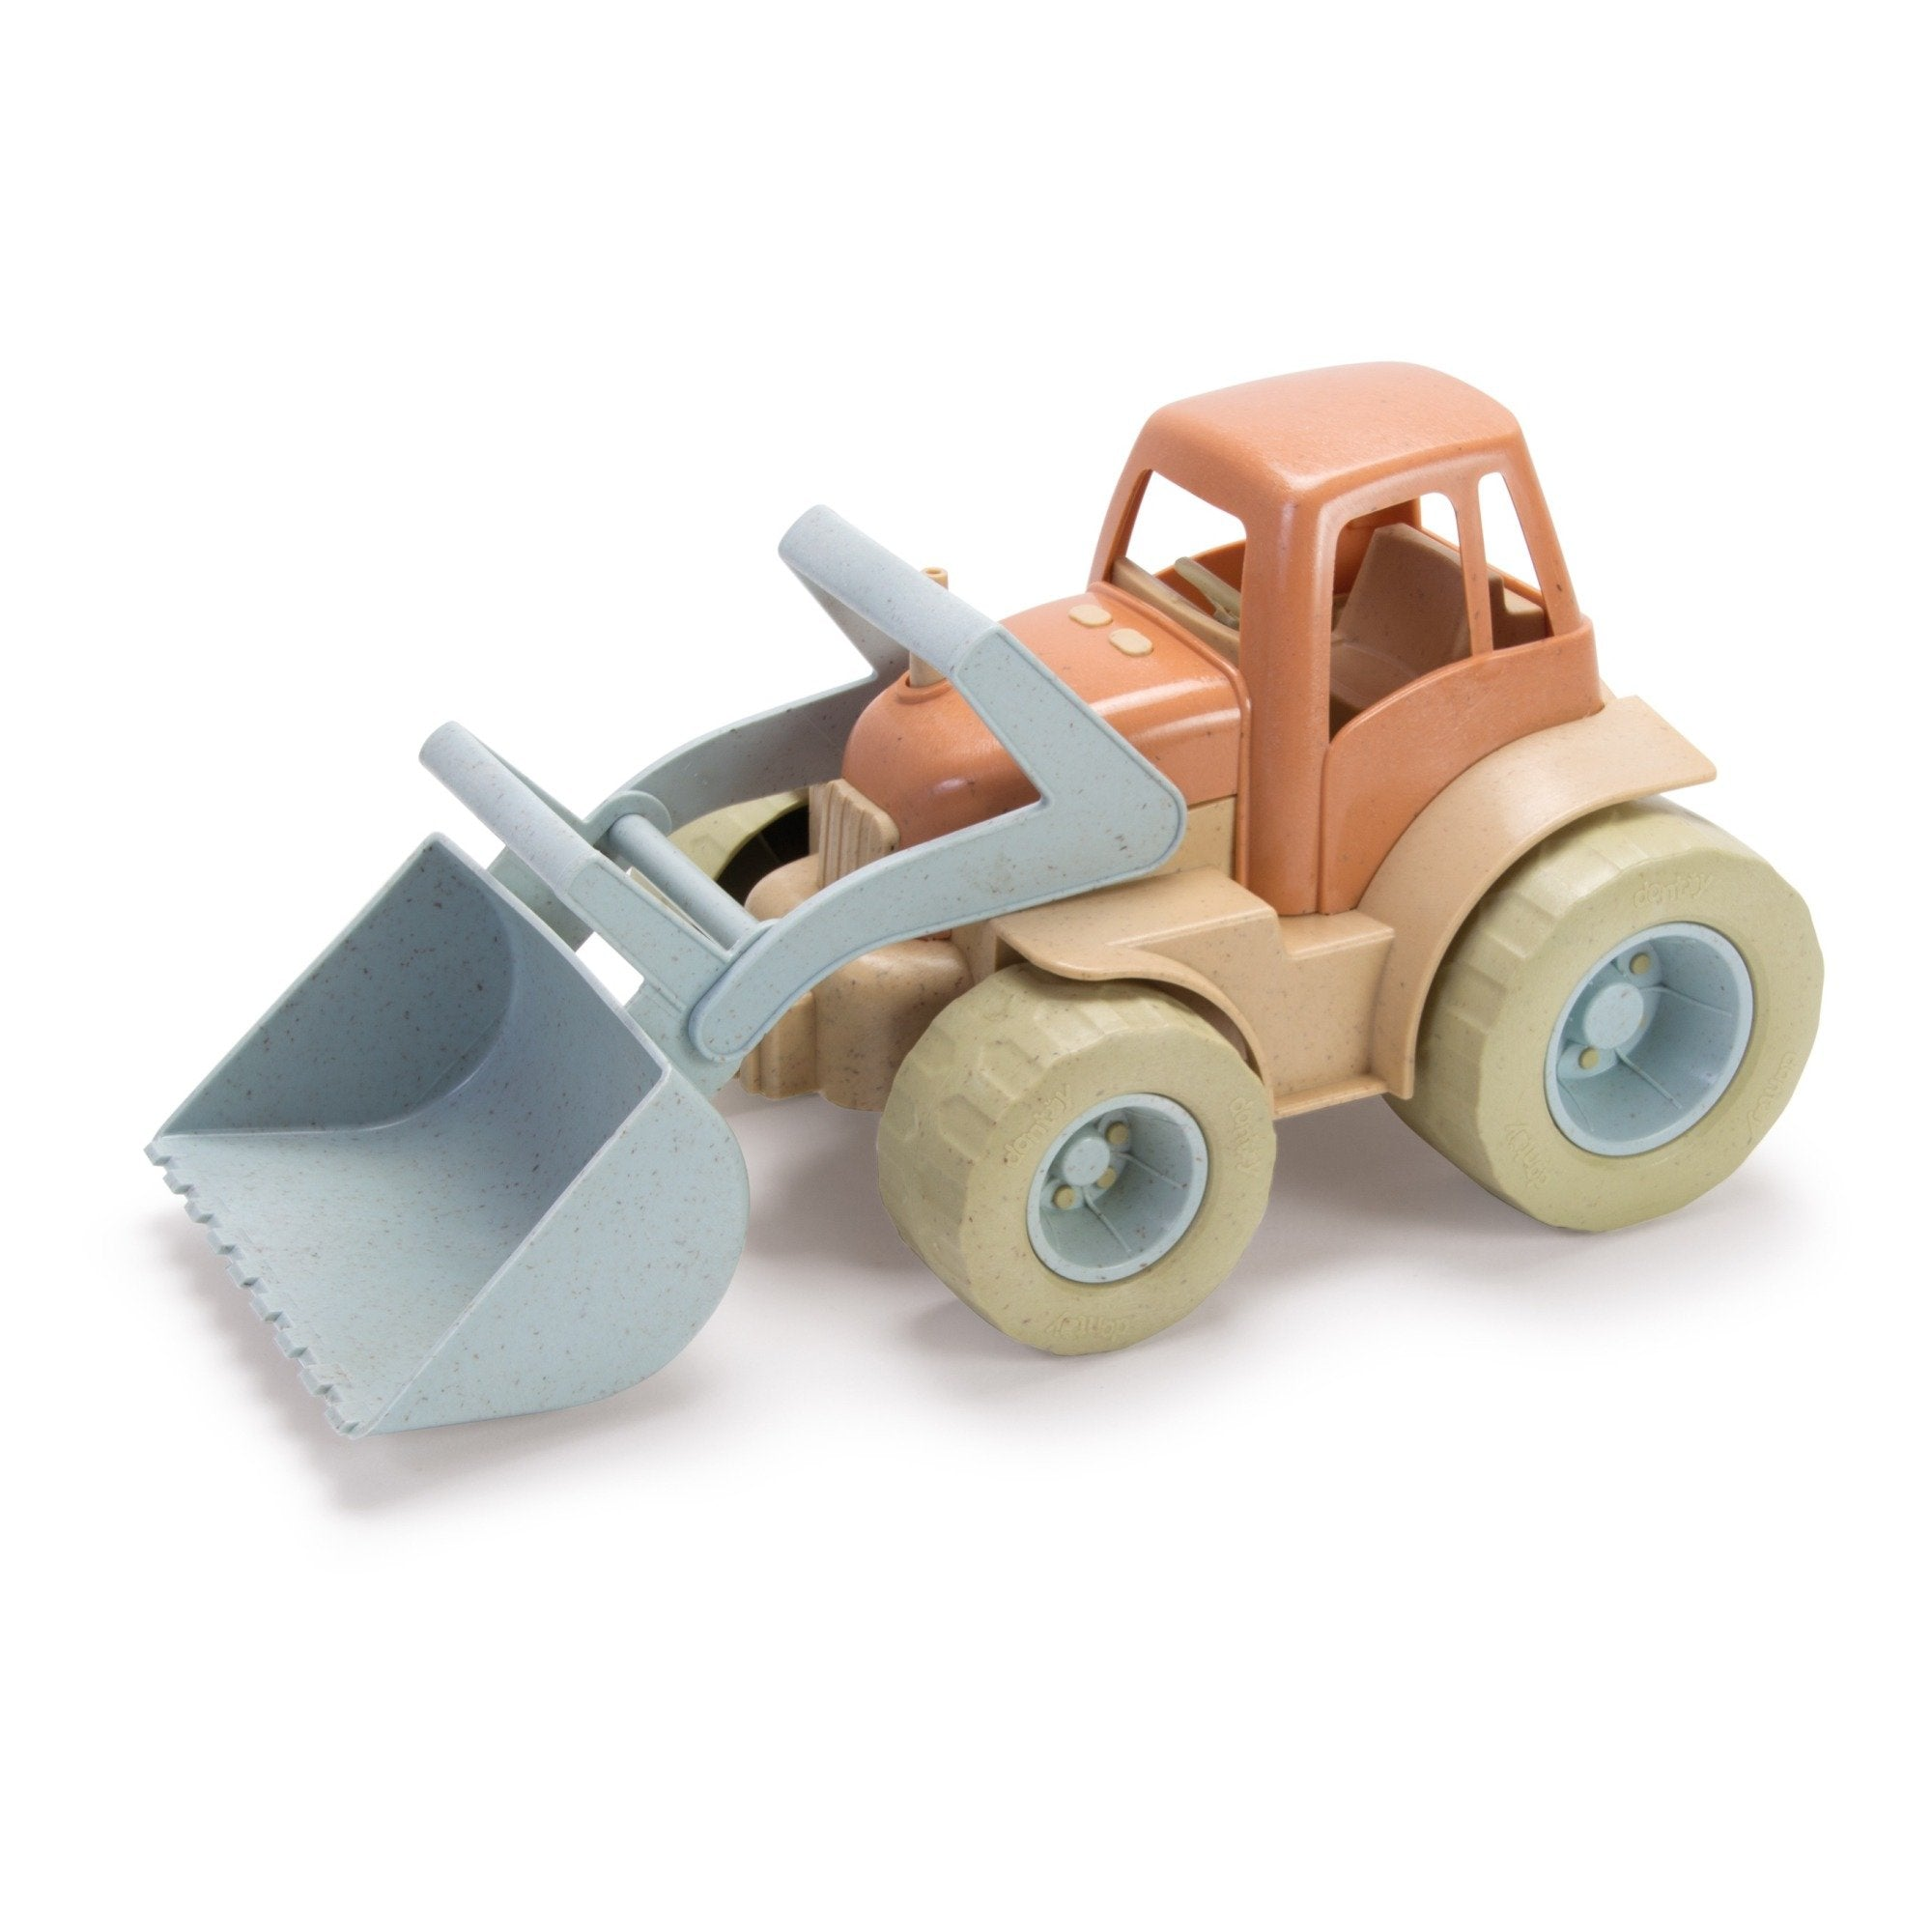 Dantoy Bio Tractor Dantoy Toy Cars at Little Earth Nest Eco Shop